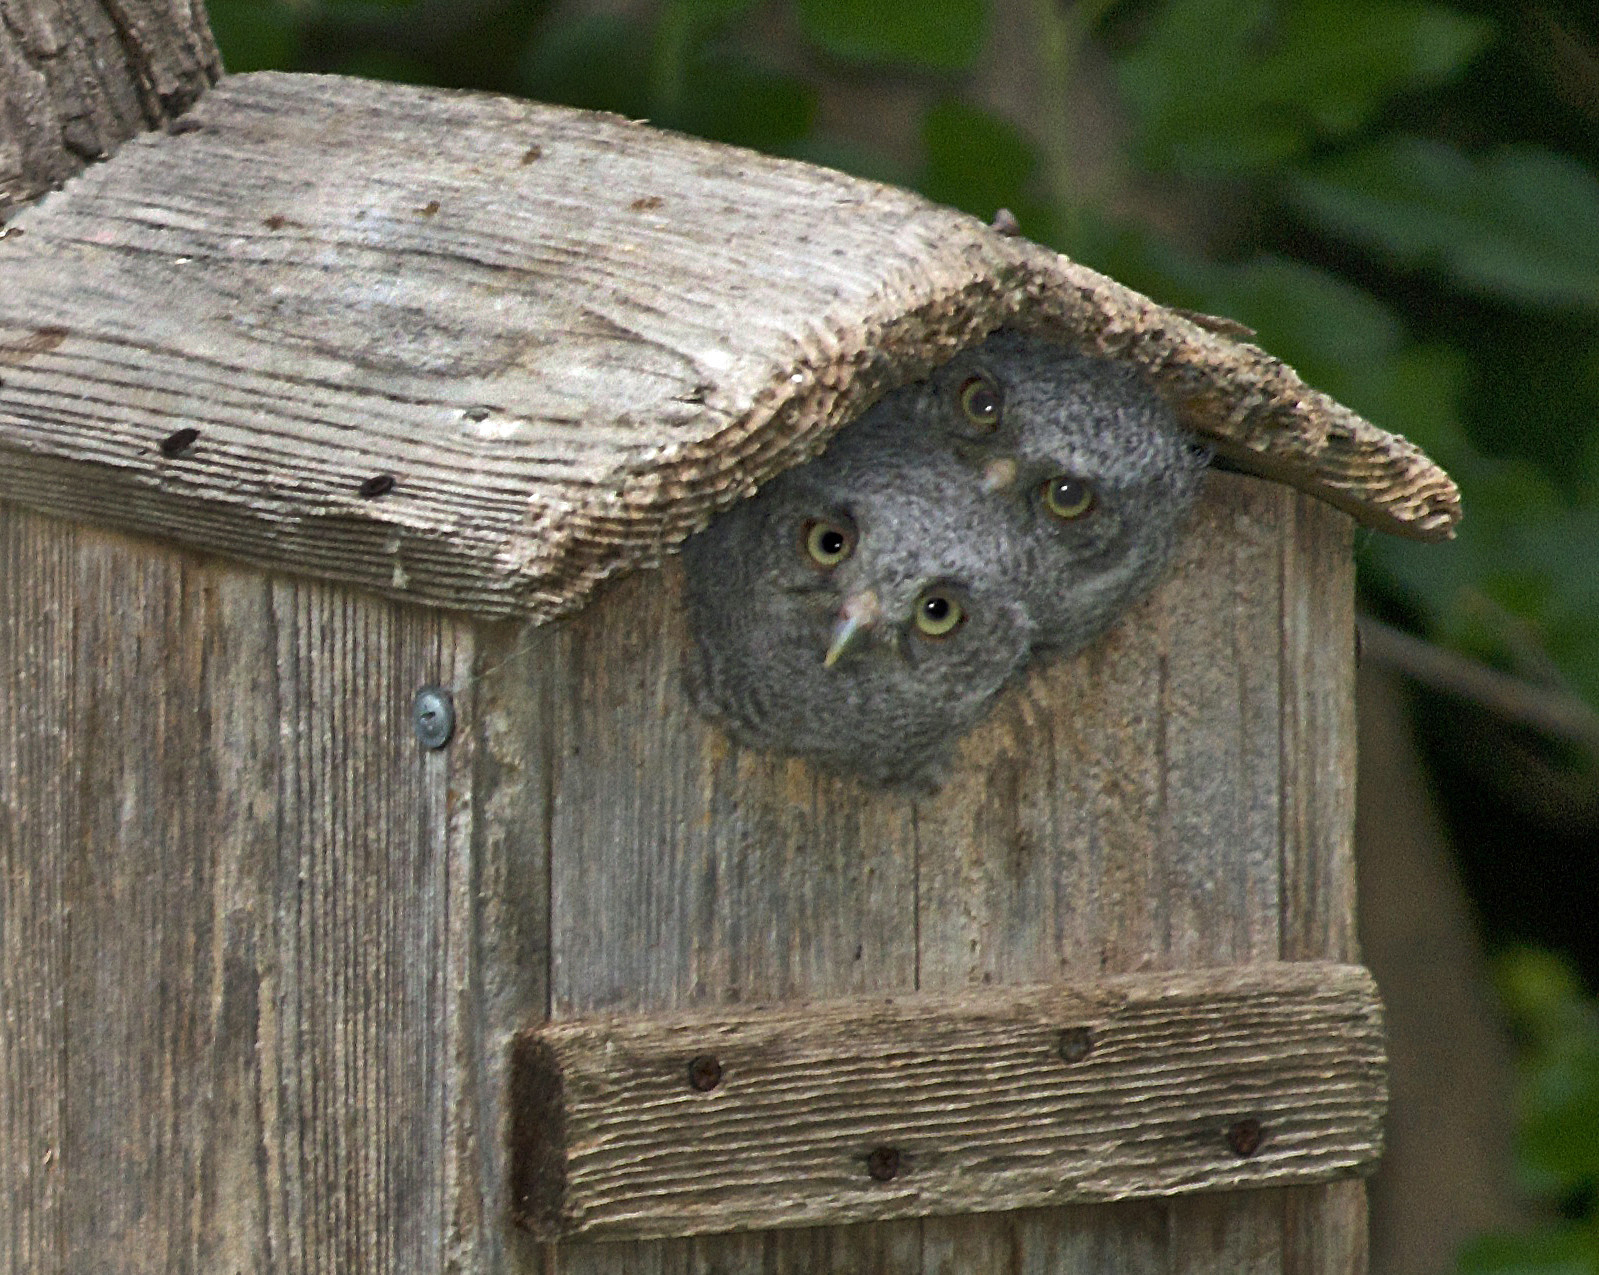 Birdhouse dimensions for different birds welcome wildlife for Different types of birdhouses